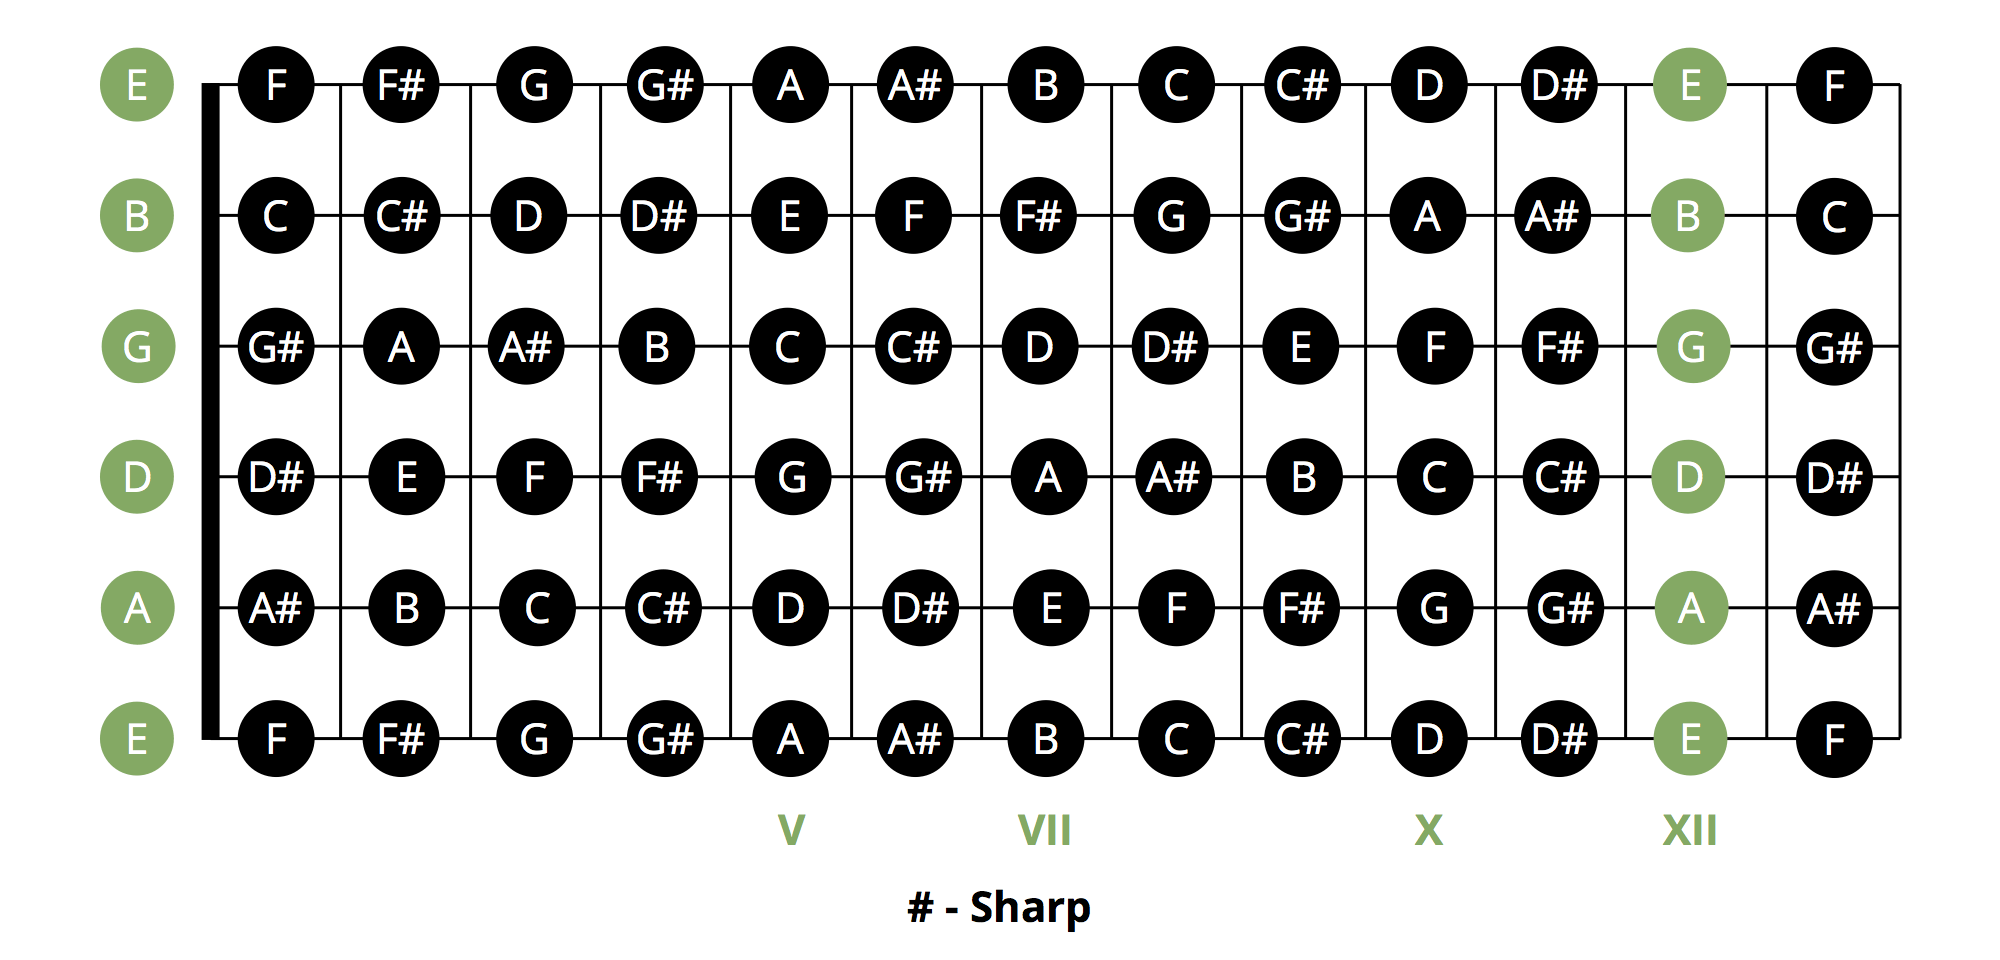 hight resolution of these will help you determine the root for playing chords using the moveable barre chords method above